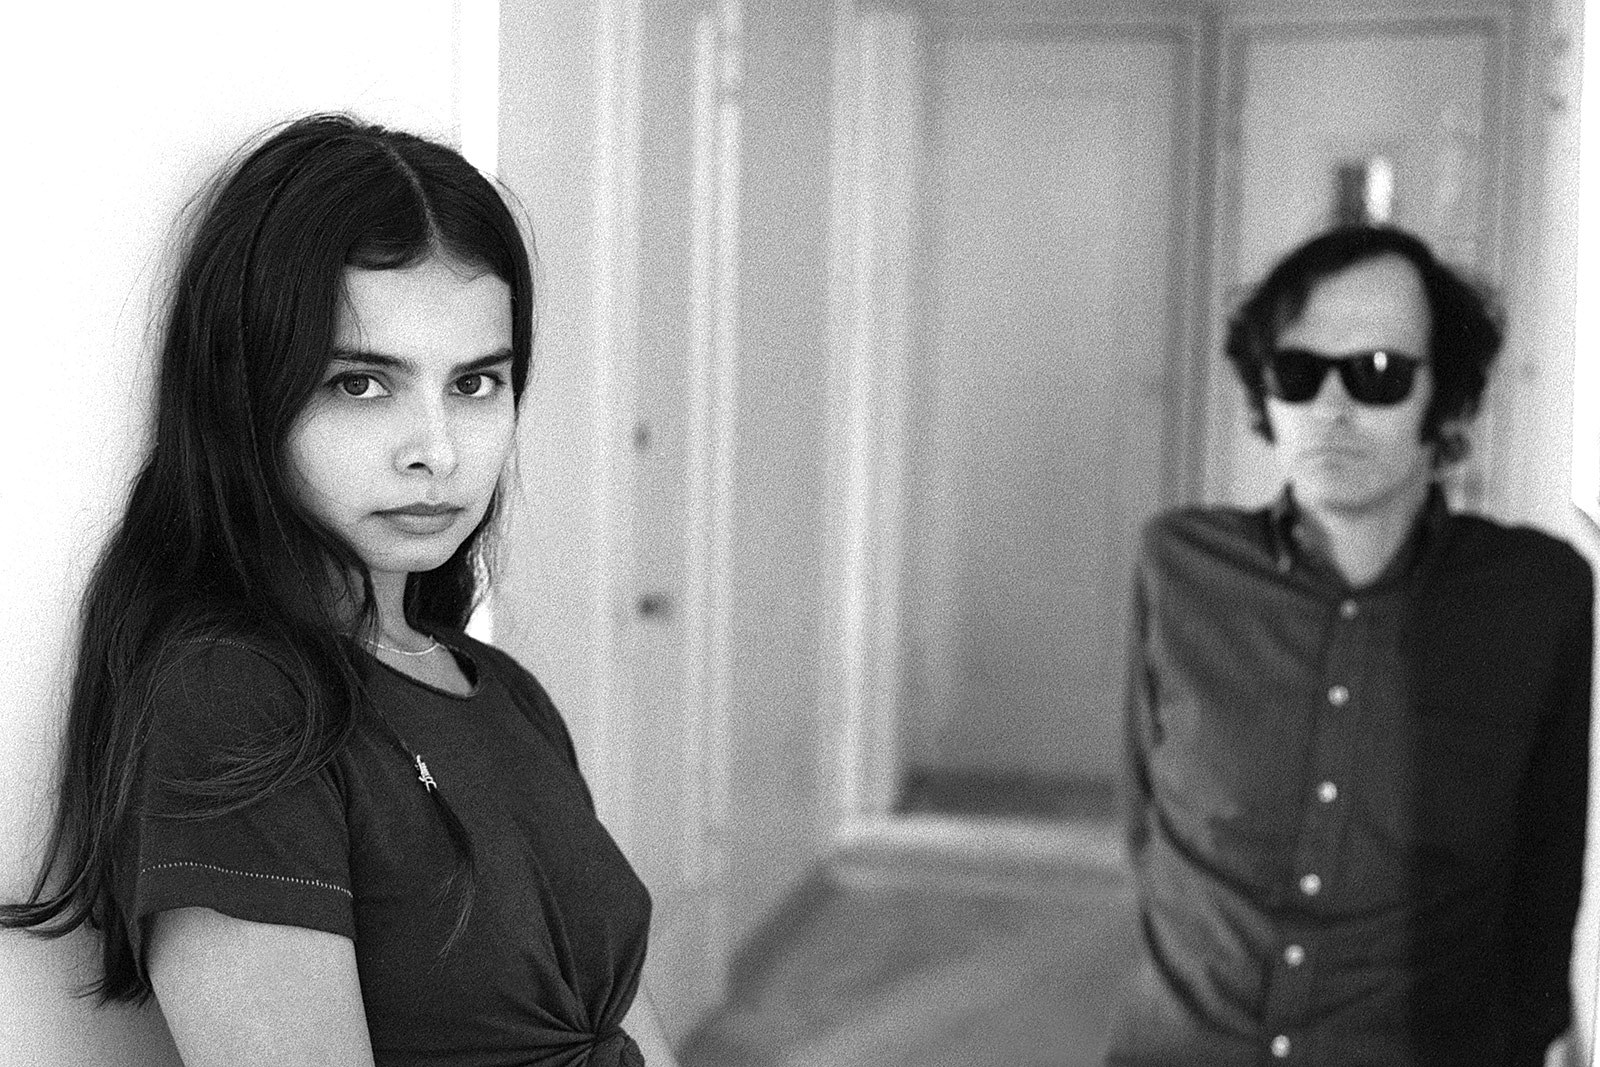 """Halah"" by Mazzy Star - Song of the Day"